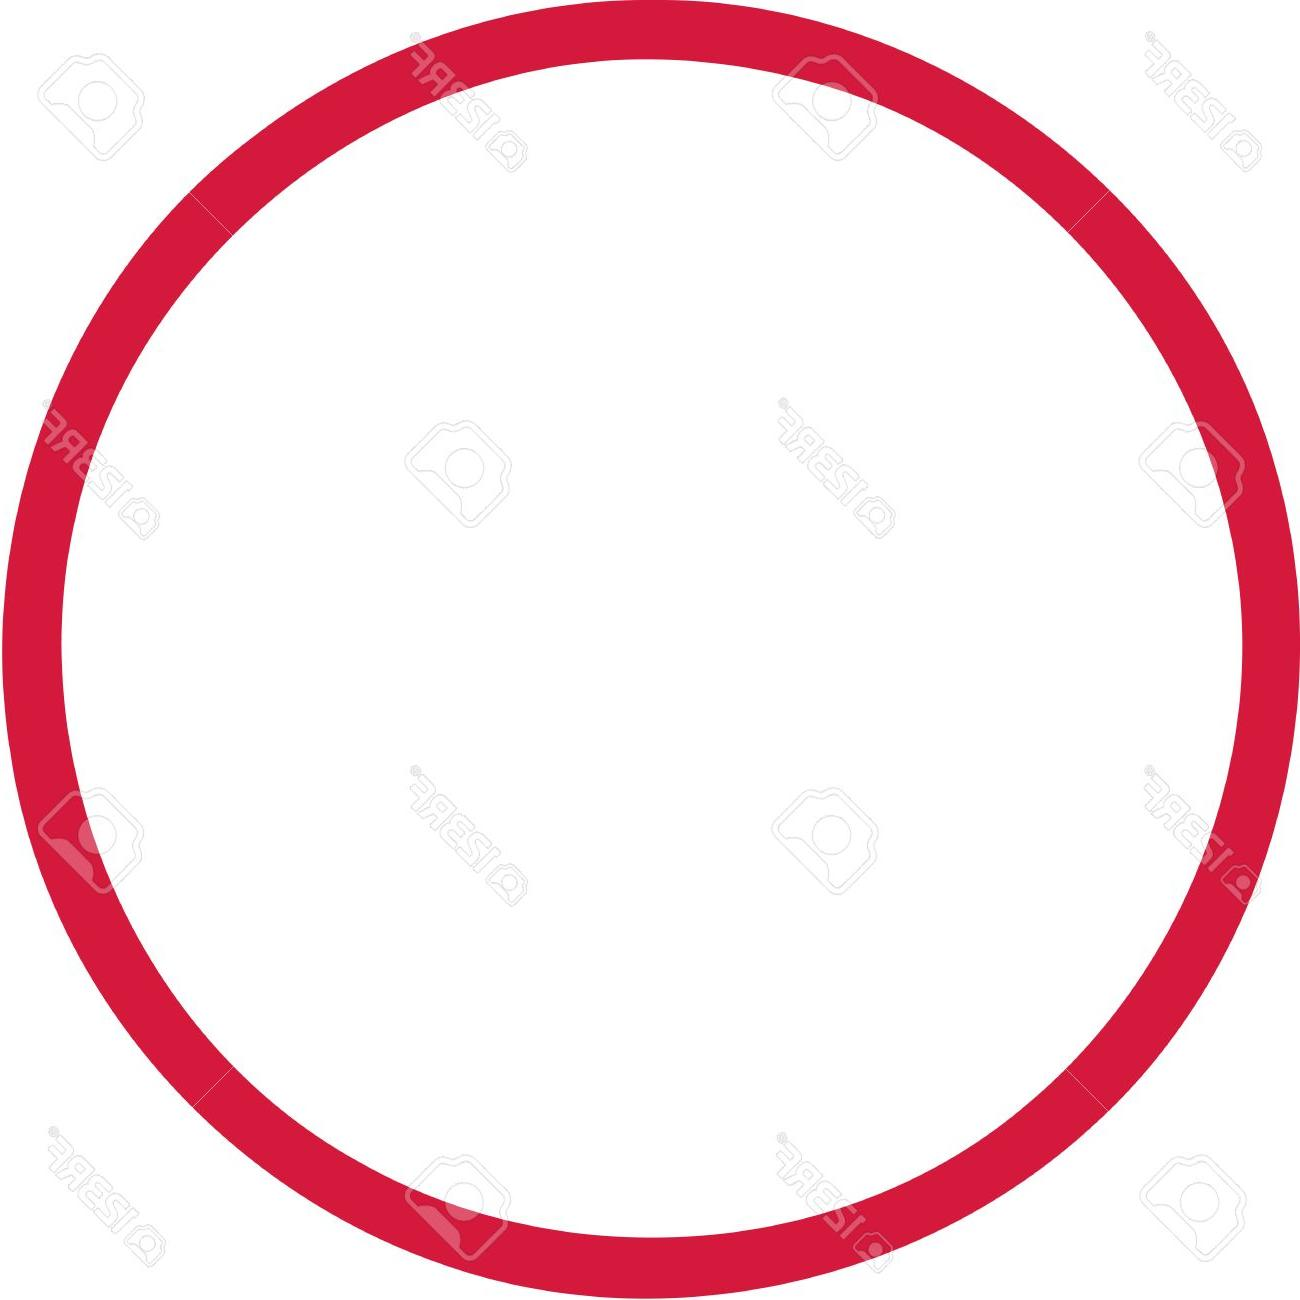 Red Circle Outline Png (107+ images in Collection) Page 1.